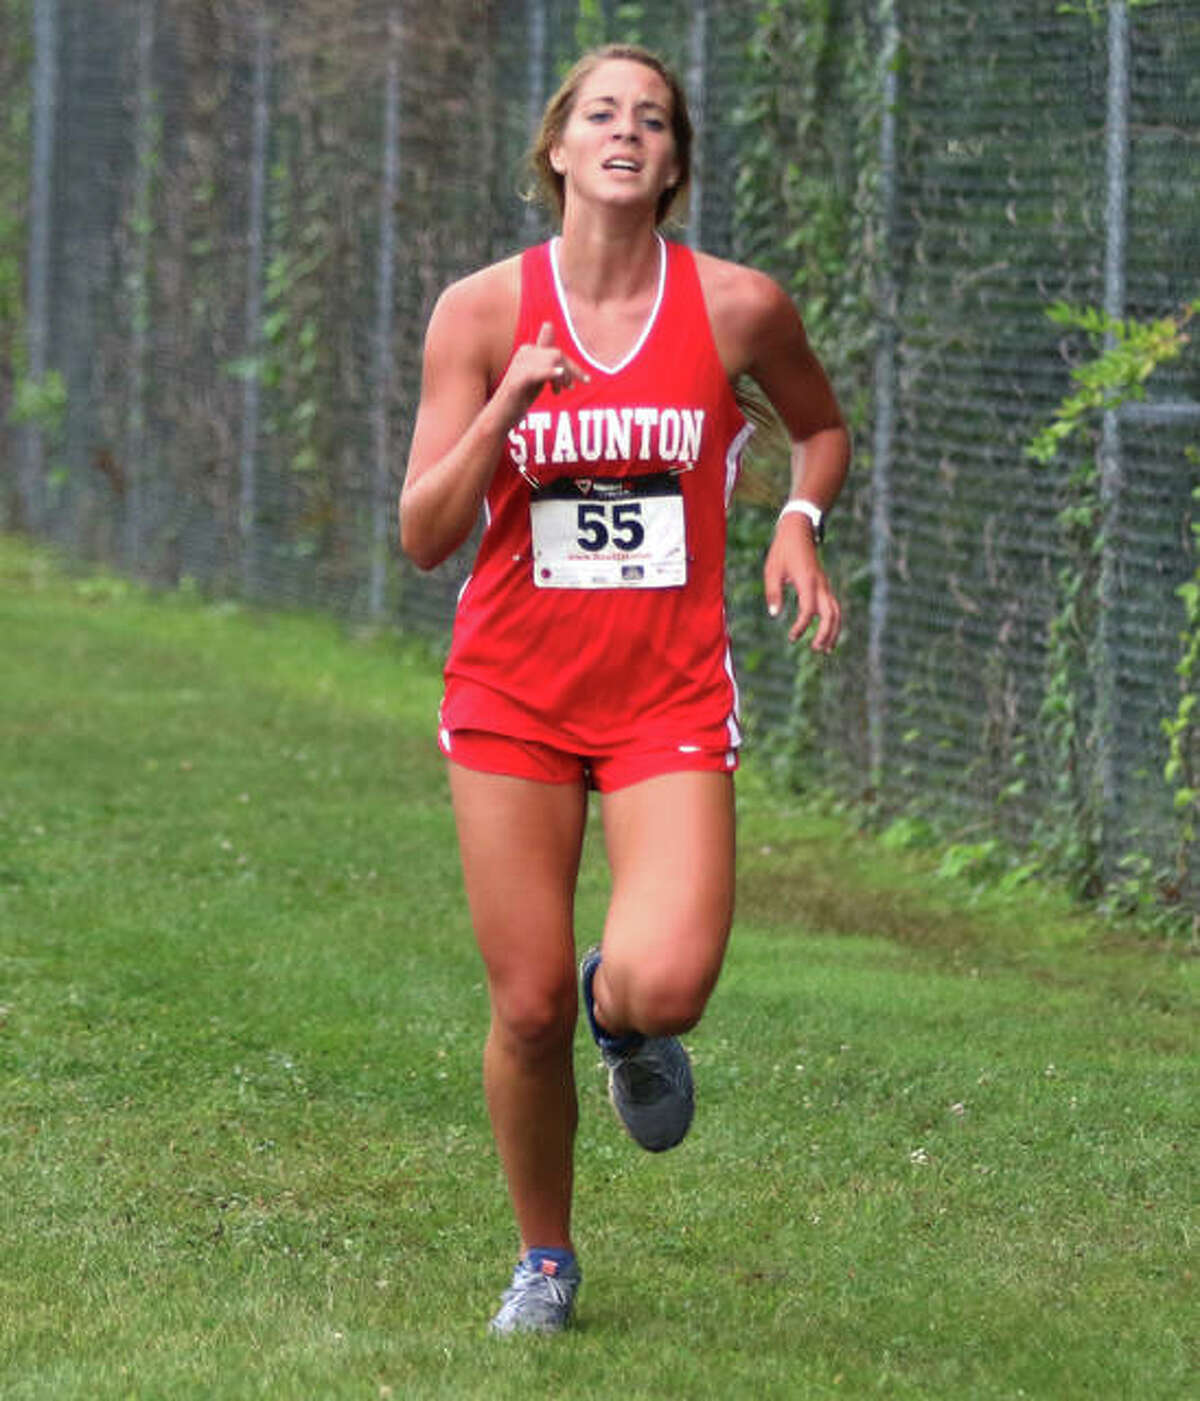 Staunton's Brooke Kinder, shown nearing the finish at the Carlinville Early Meet on Sept. 1, was one of three Bulldogs running in the girls race Saturday at the Southwestern Invite in Piasa.